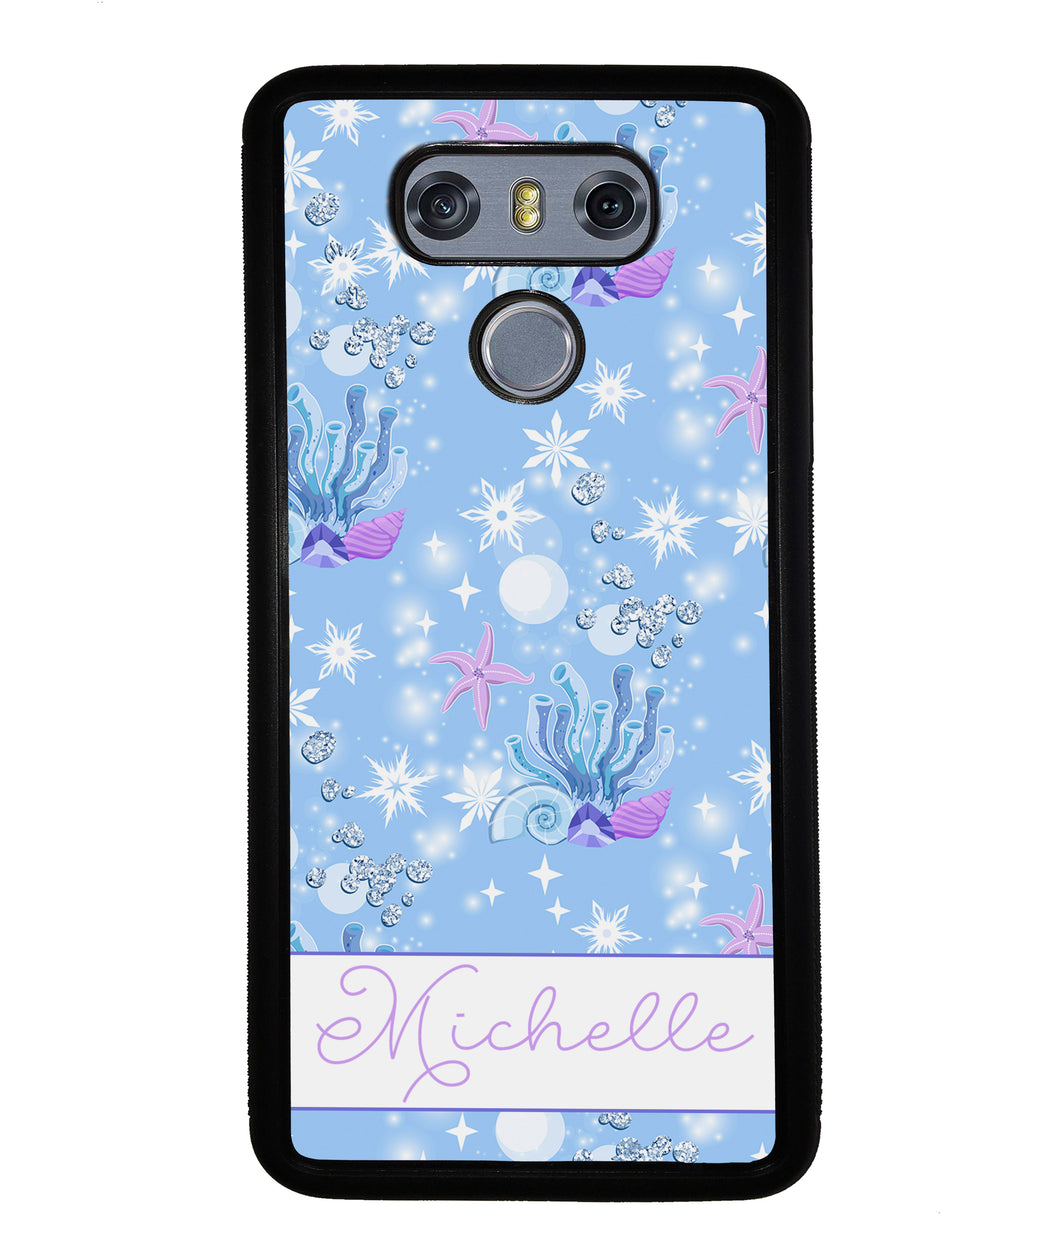 Sea Shells Coral and Starfish Personalized | LG Phone Case